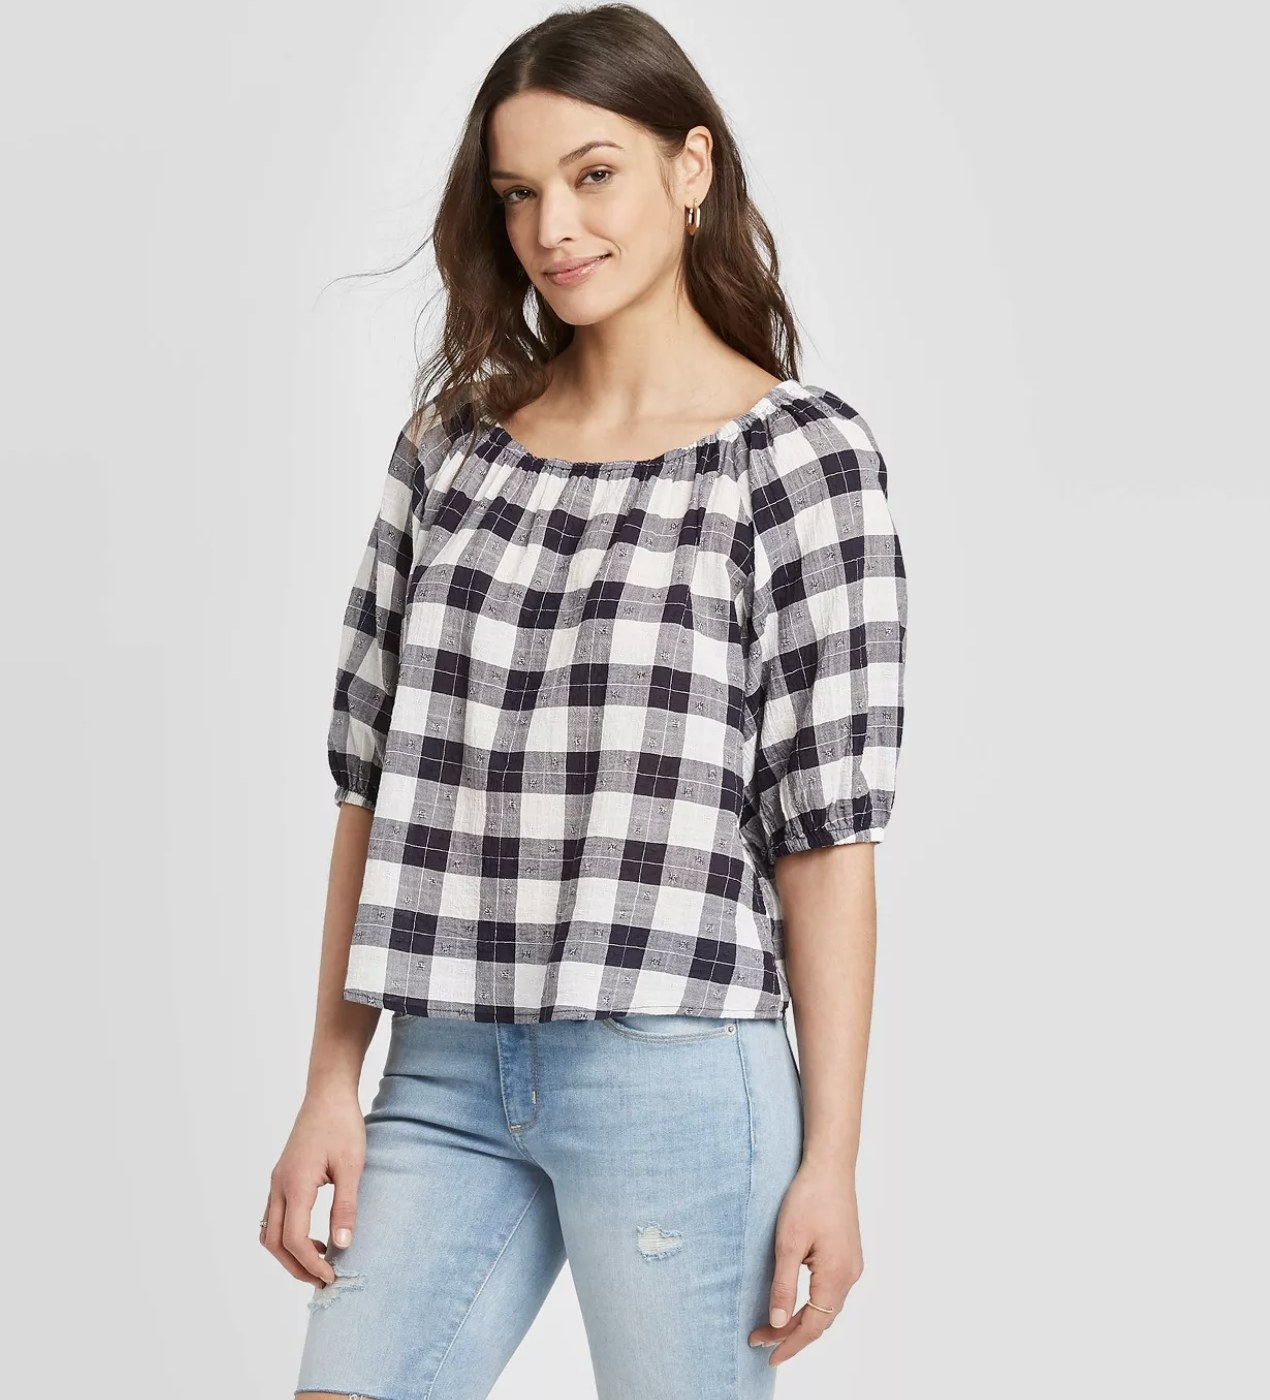 Model wearing the gingham top